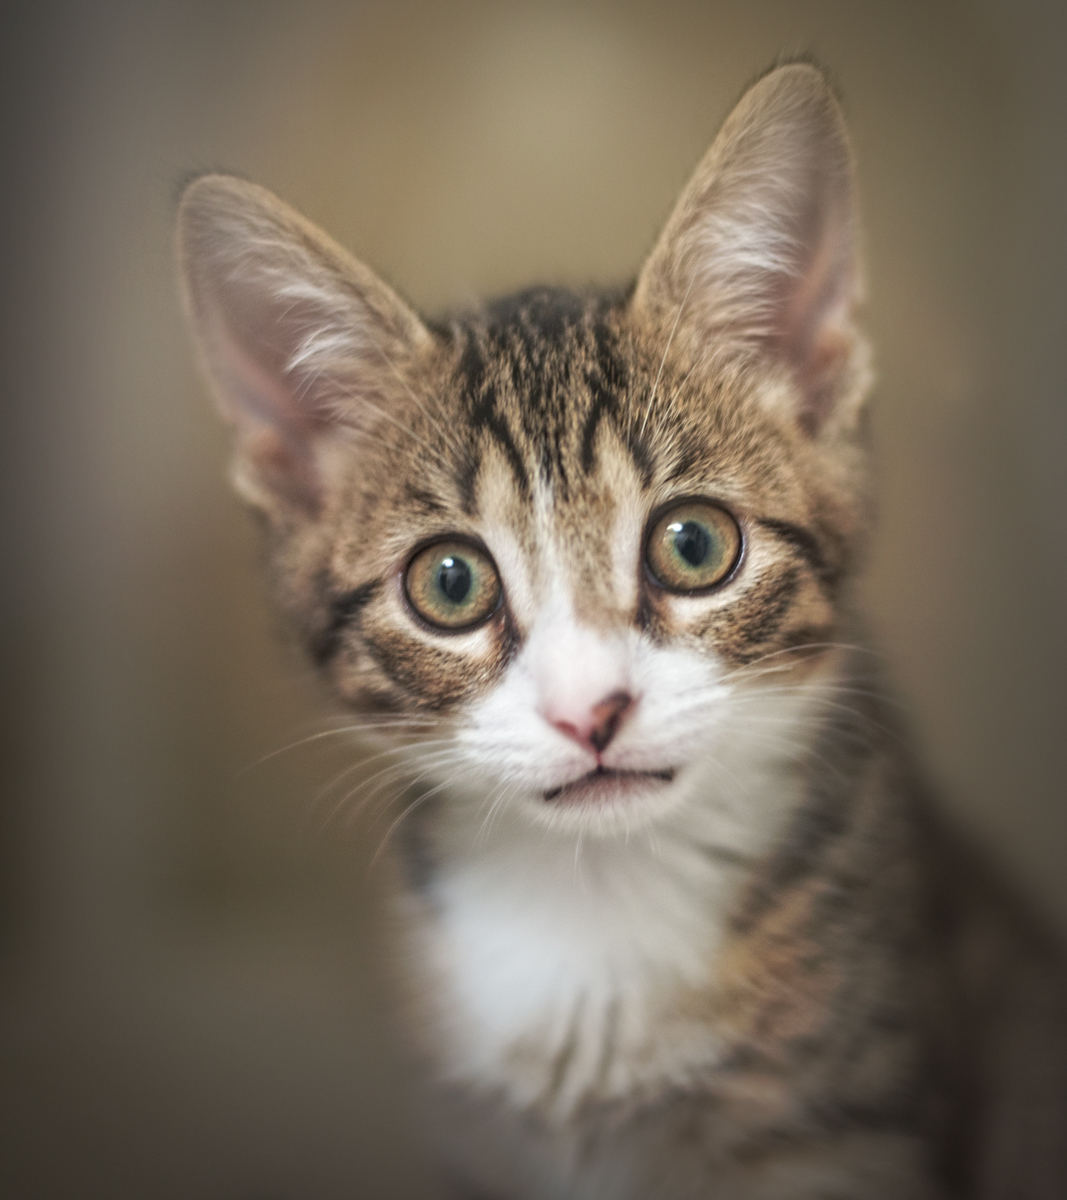 Portrait of a Kitten